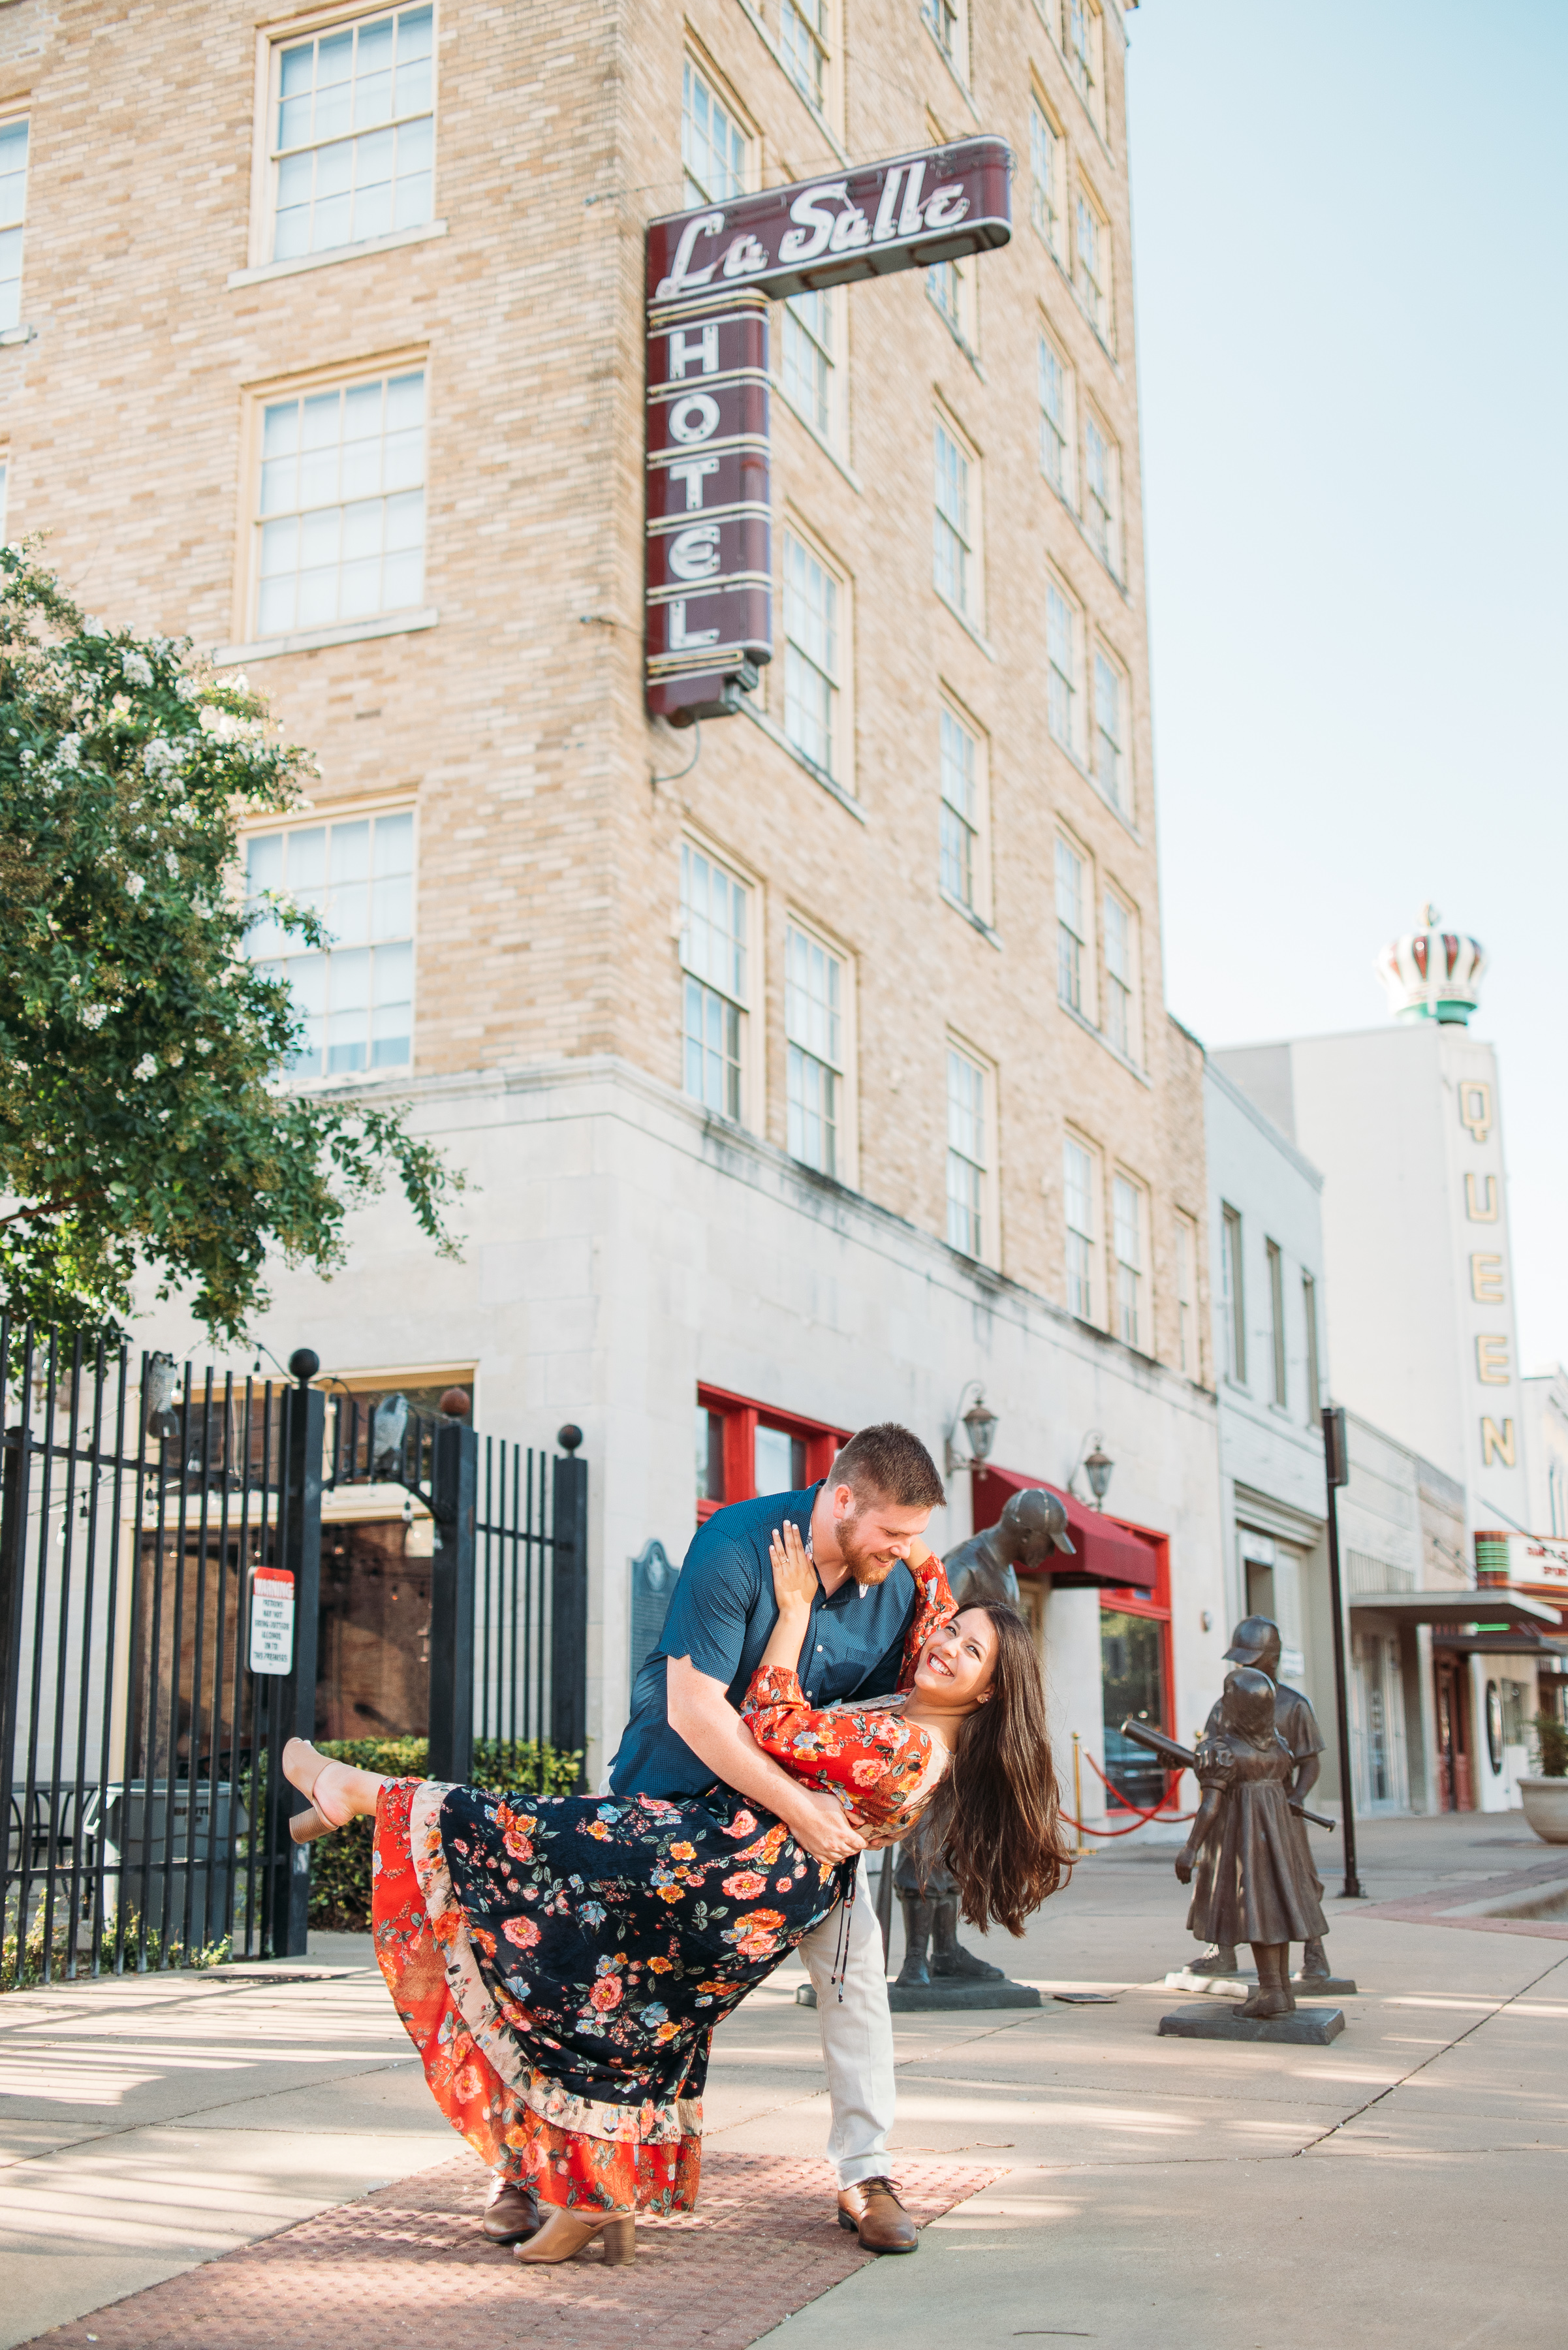 Downtown-Bryan-Engagement-George-Bush-Library-Texas-A&M-University-College-Station-Wedding-Photographer-San-Angel-Photo-Mark-Abigail-Jake-21.jpg